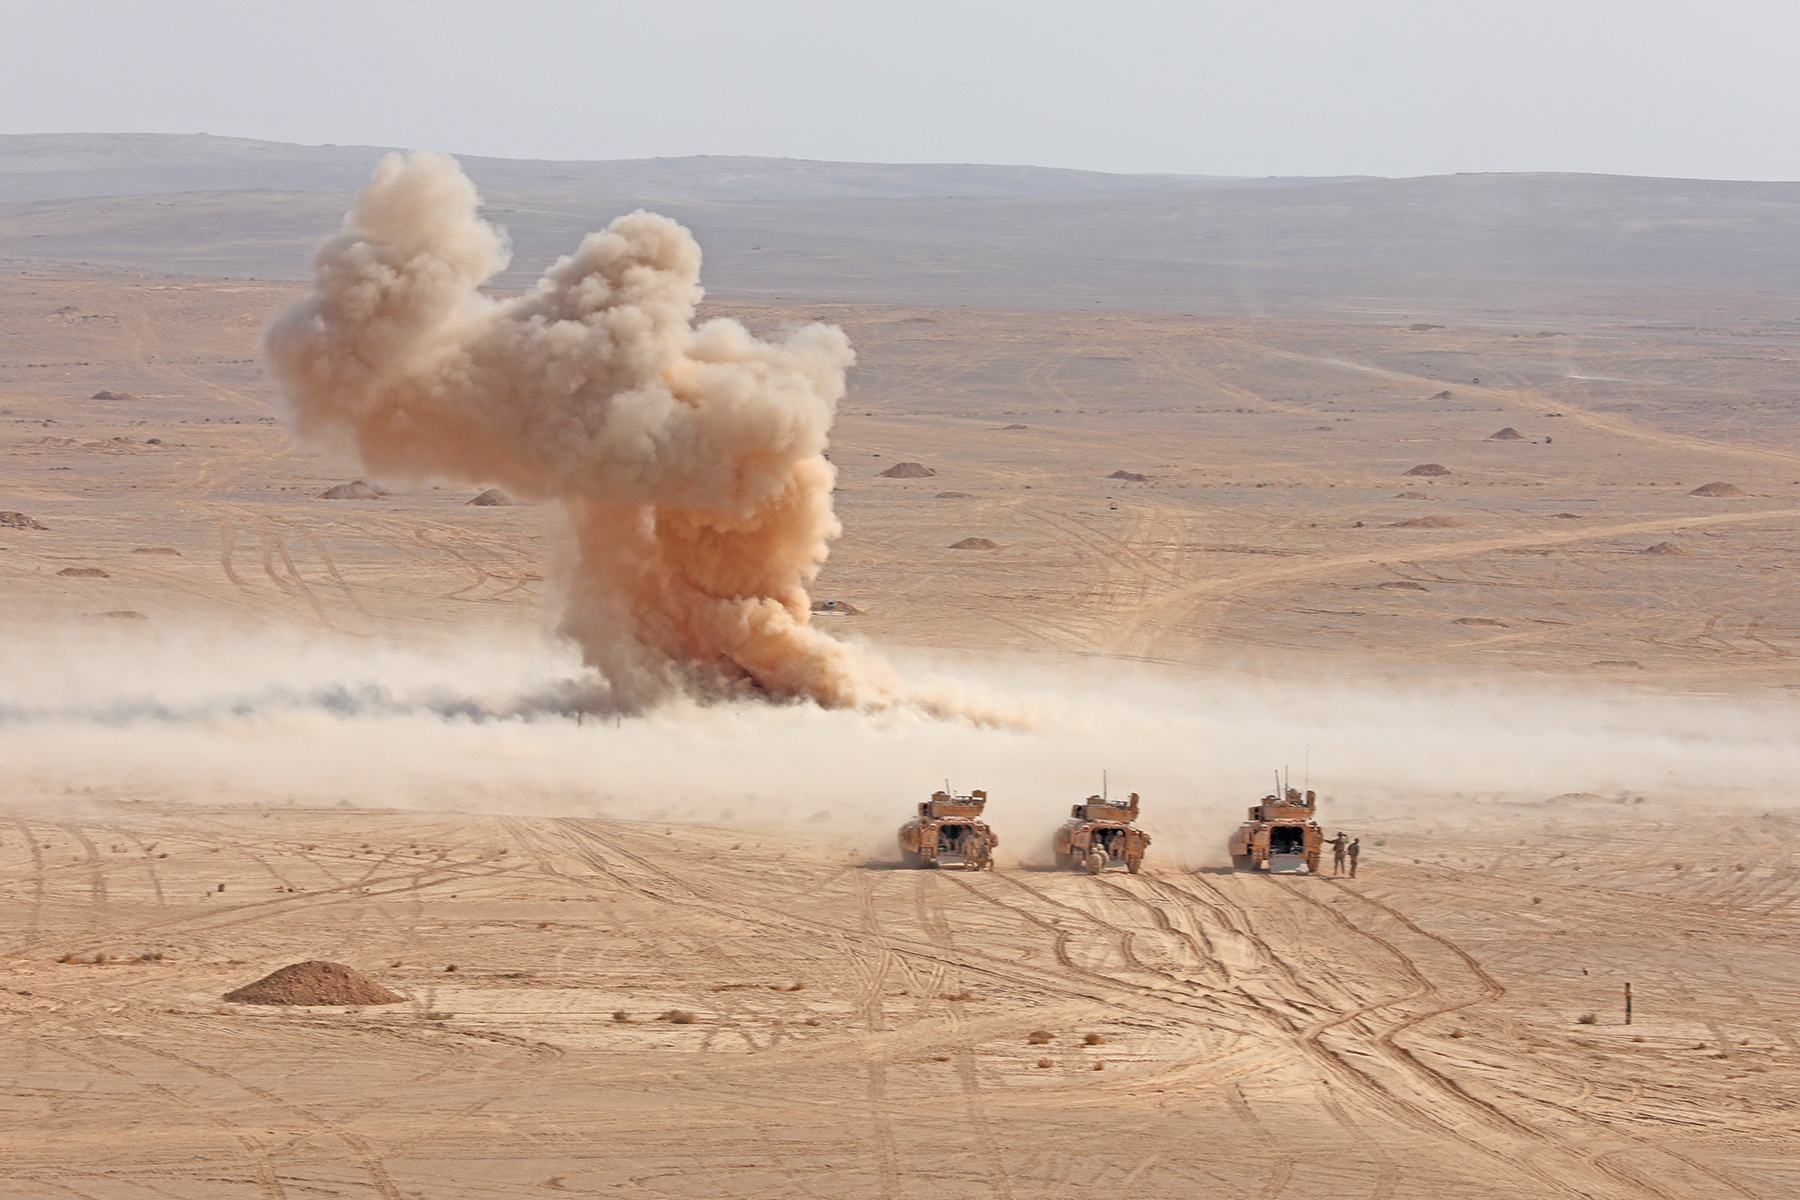 Soldiers practice detonating Bangalore torpedoes in Jordan, Aug. 29, 2019, during Eager Lion, a major U.S. Central Command exercise that aims to integrate forces in a multilateral environment. (Sgt. Liane Hatch/Army)